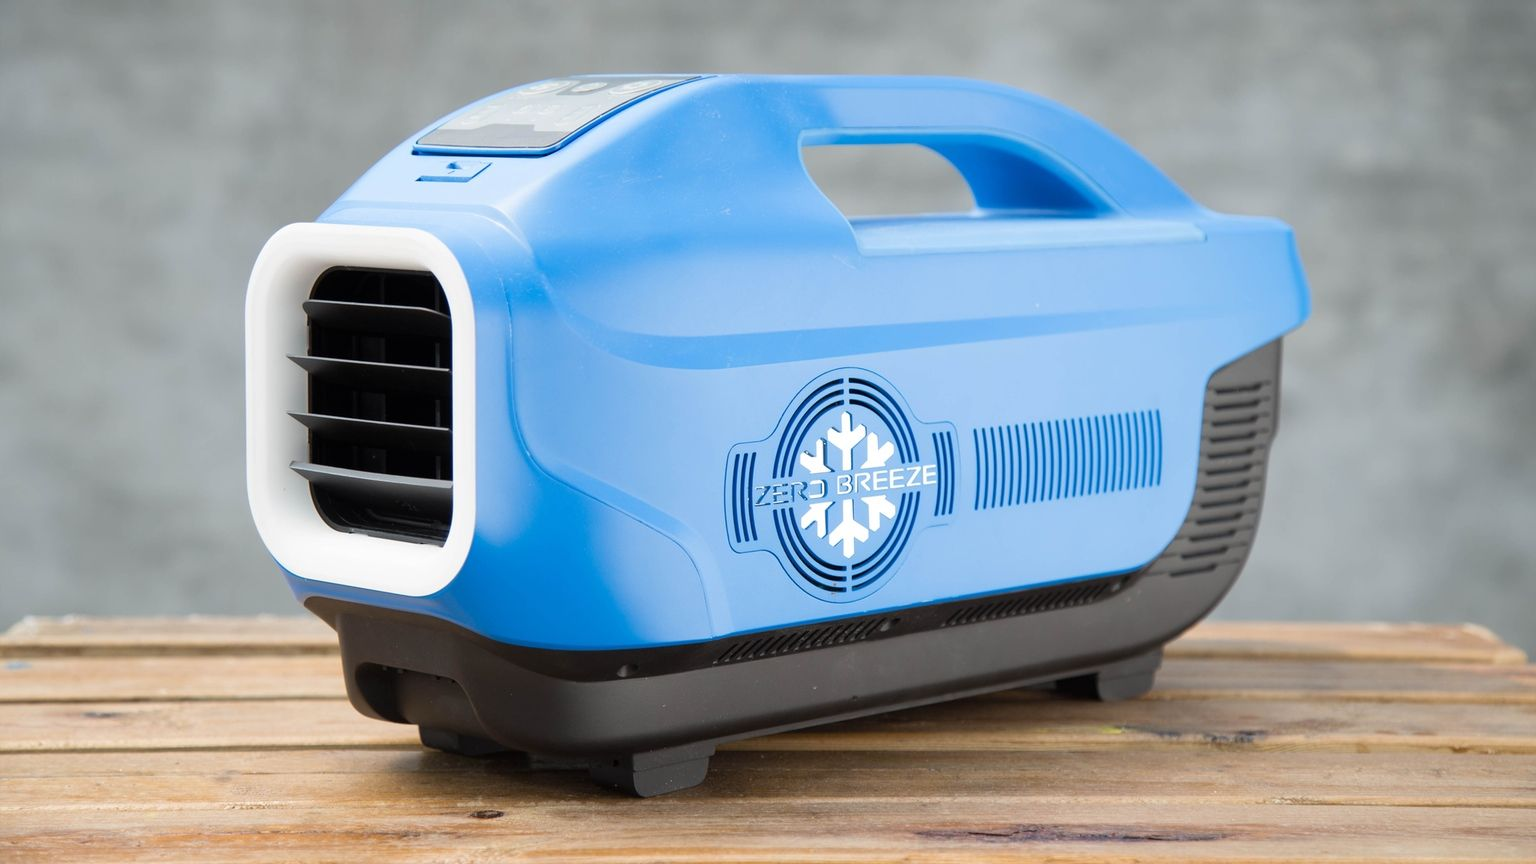 Portable Smart Multifunctional Air Conditioner That Includes A Bluetooth Speaker A Nig Portable Air Conditioner Camping Air Conditioner Cool Camping Gadgets